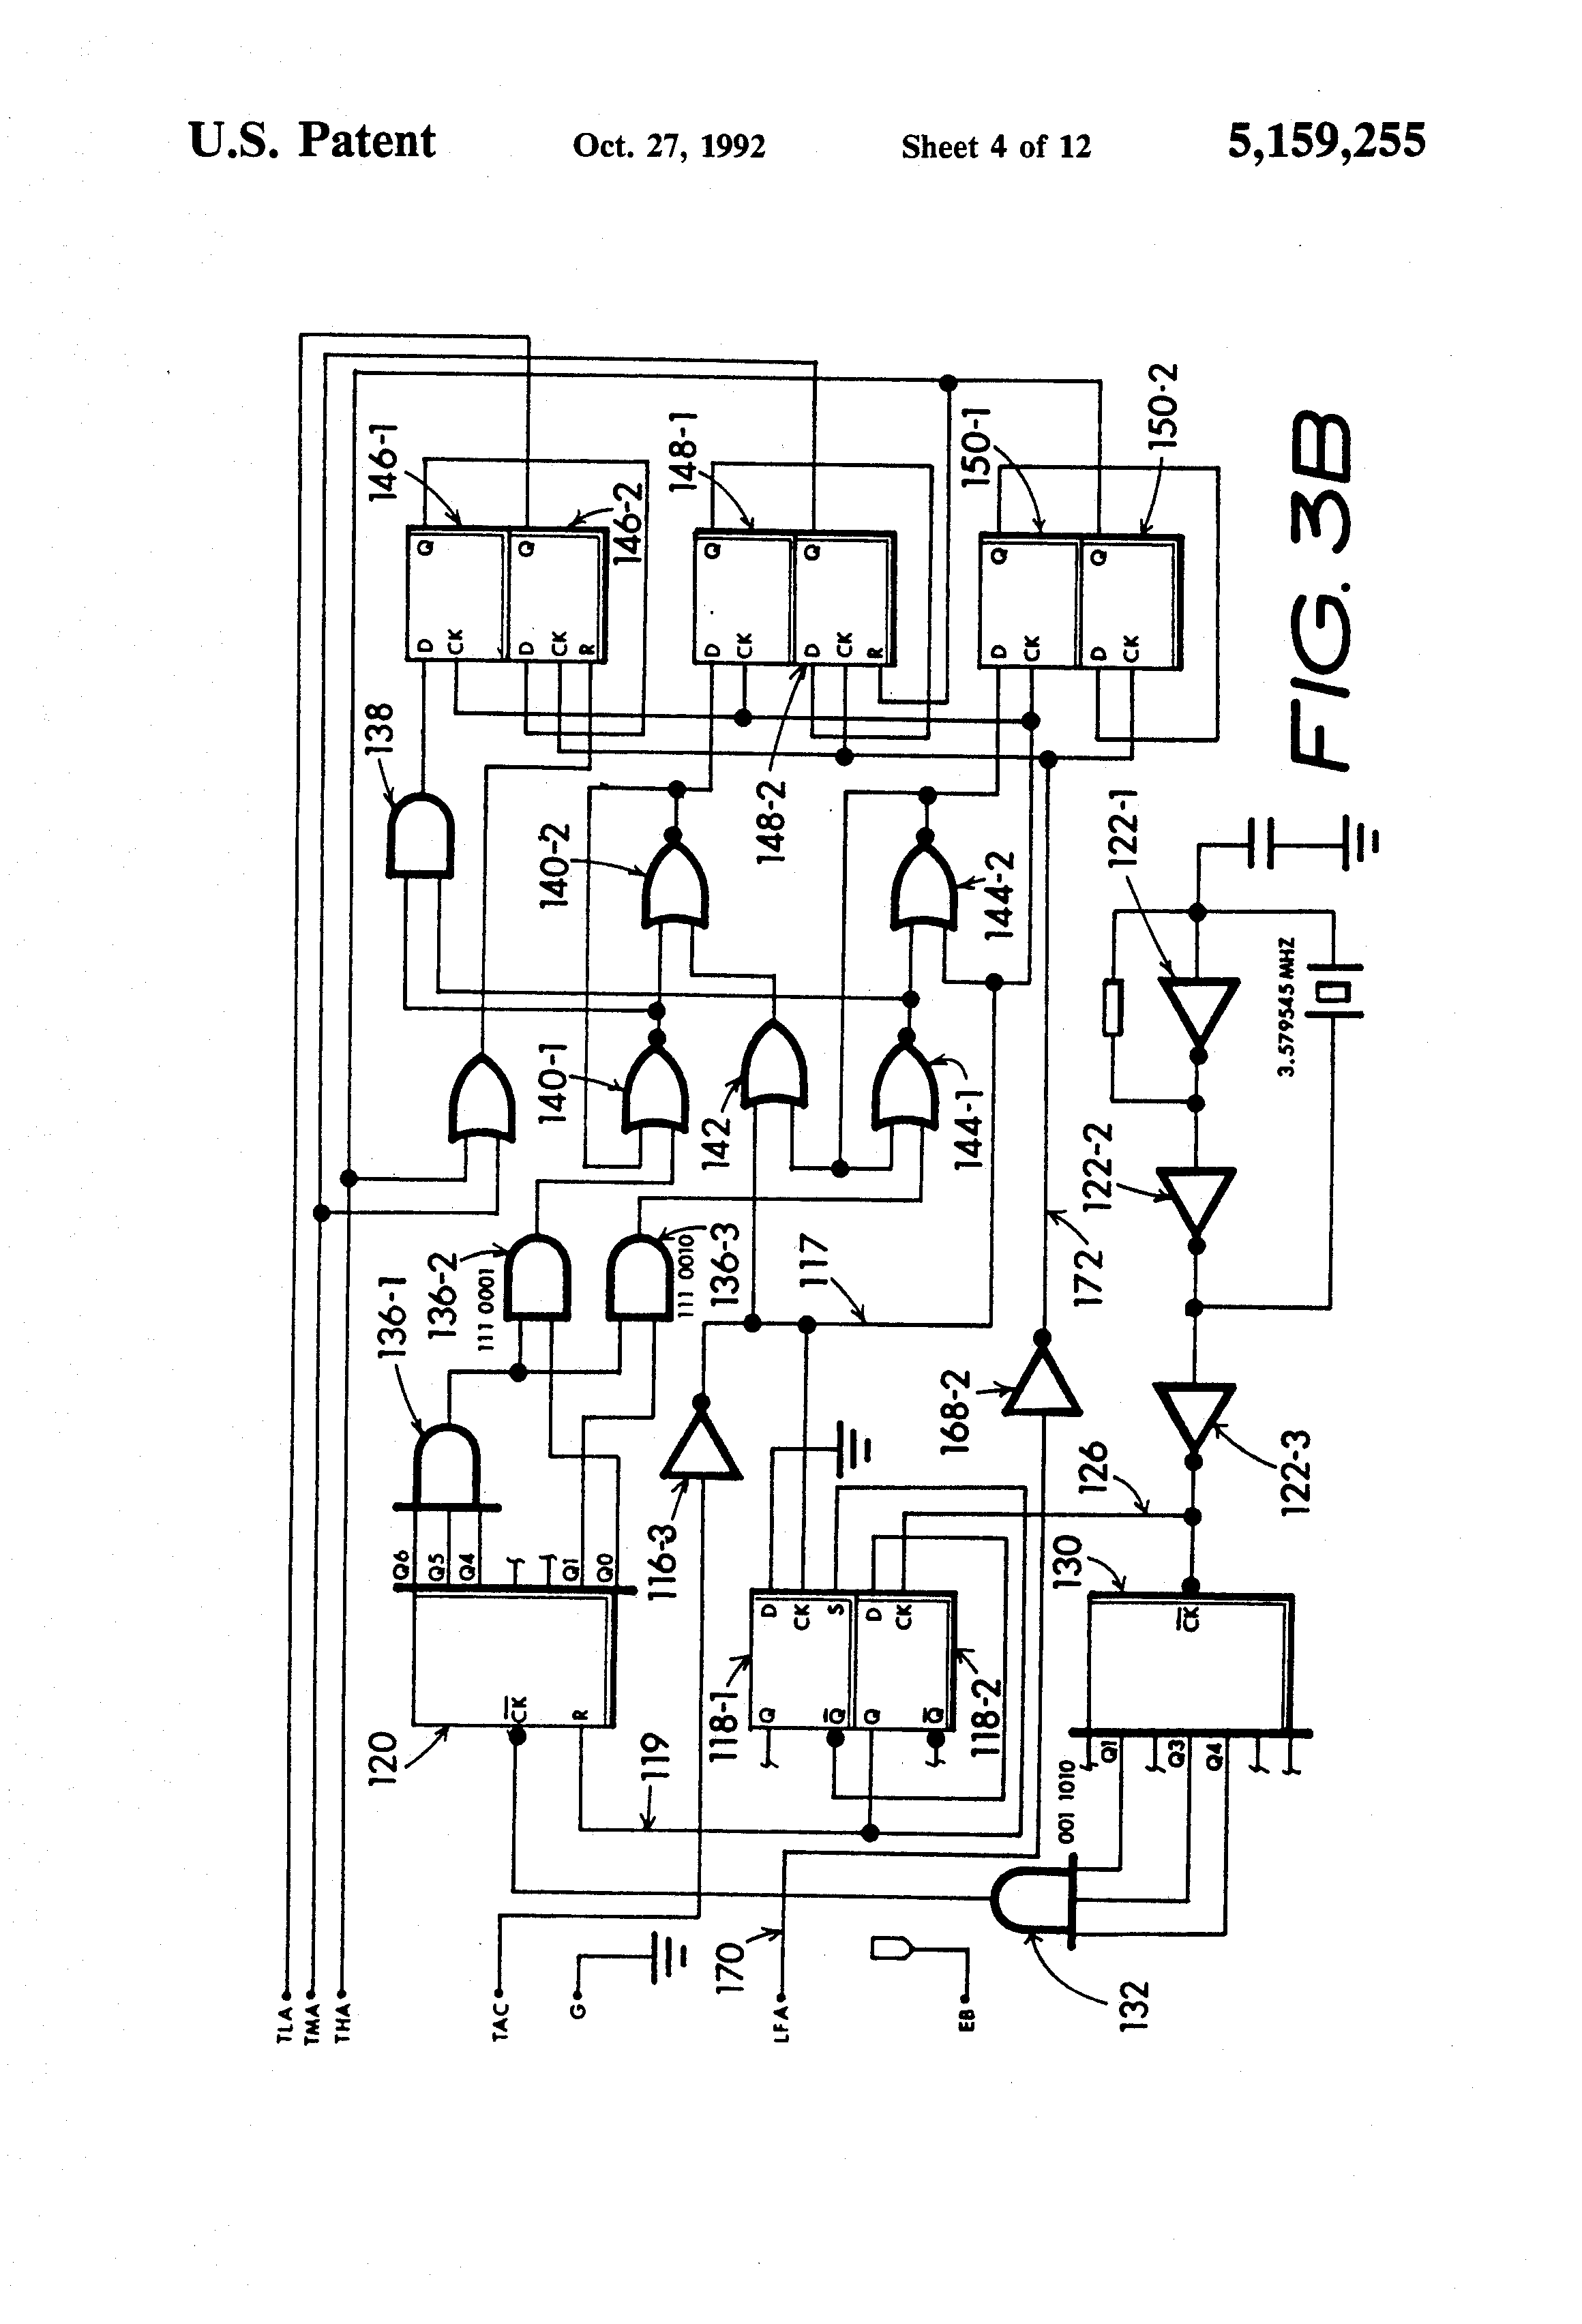 Nissan Forklift Alternator Wiring Diagram Library Mitsubishi Diagrams Fancy Schematic Pattern Electrical And Operator Manuals Unique